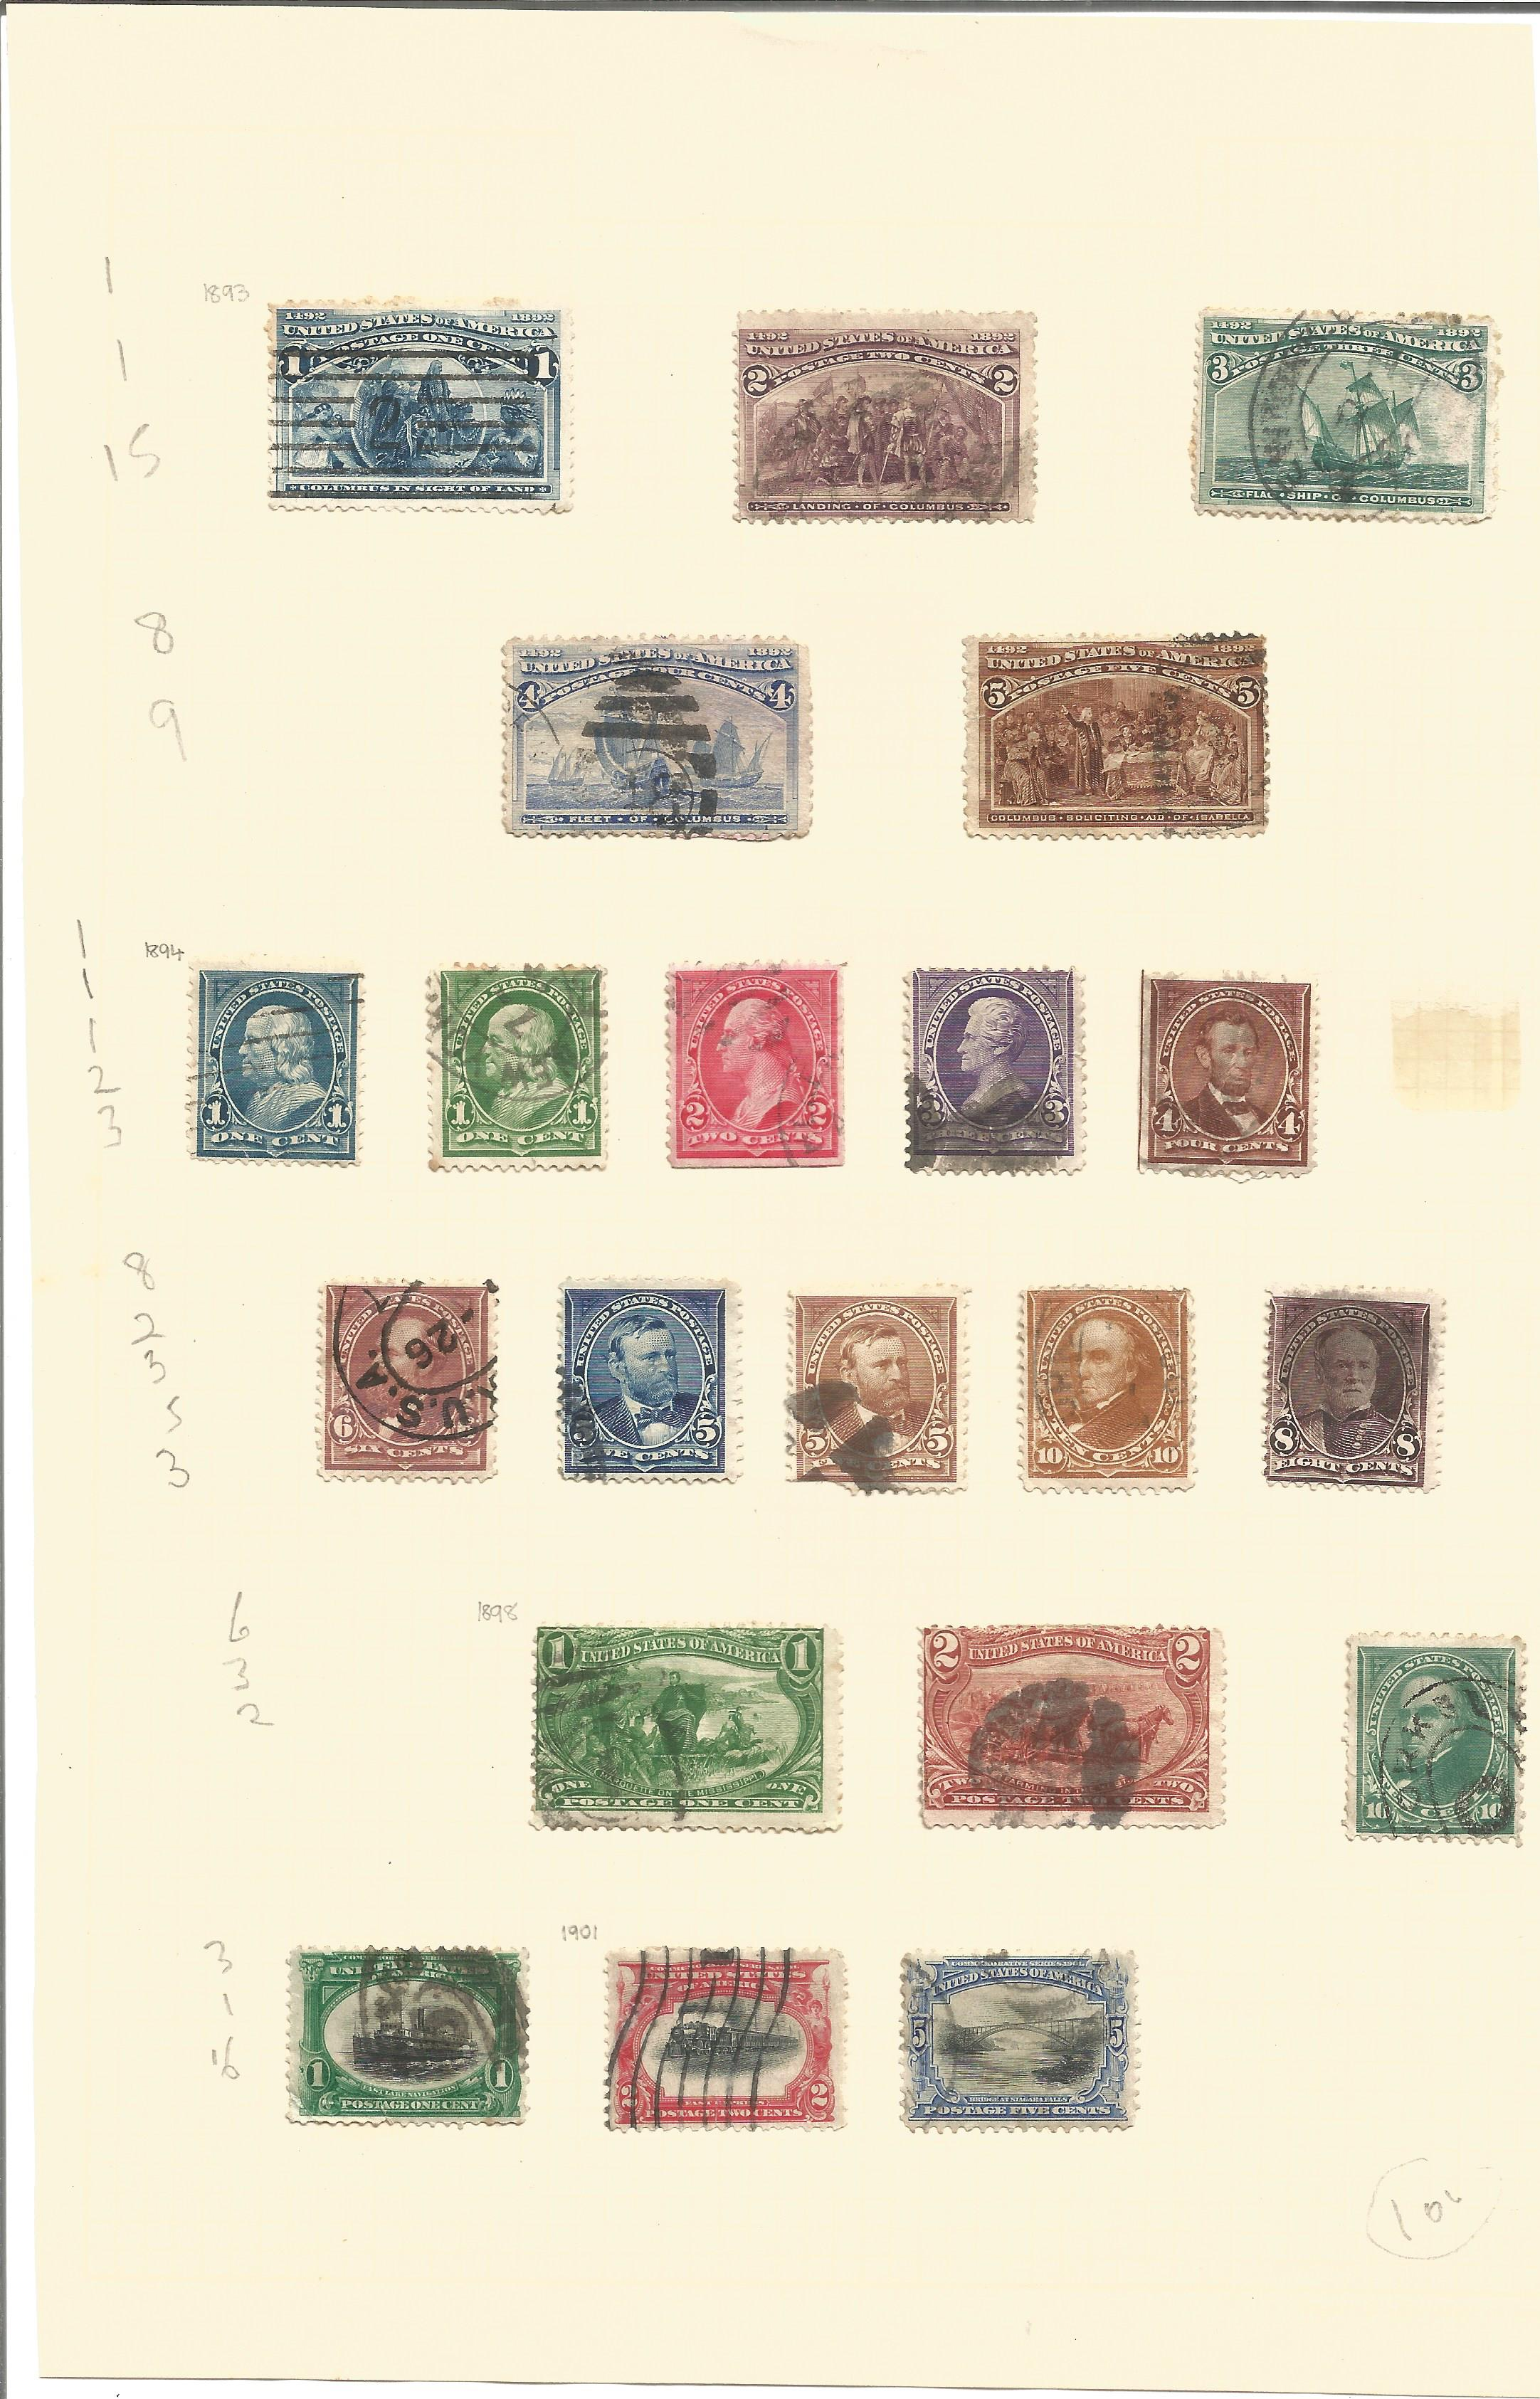 USA stamp collection. 1893/1901. Good condition. We combine postage on multiple winning lots and can